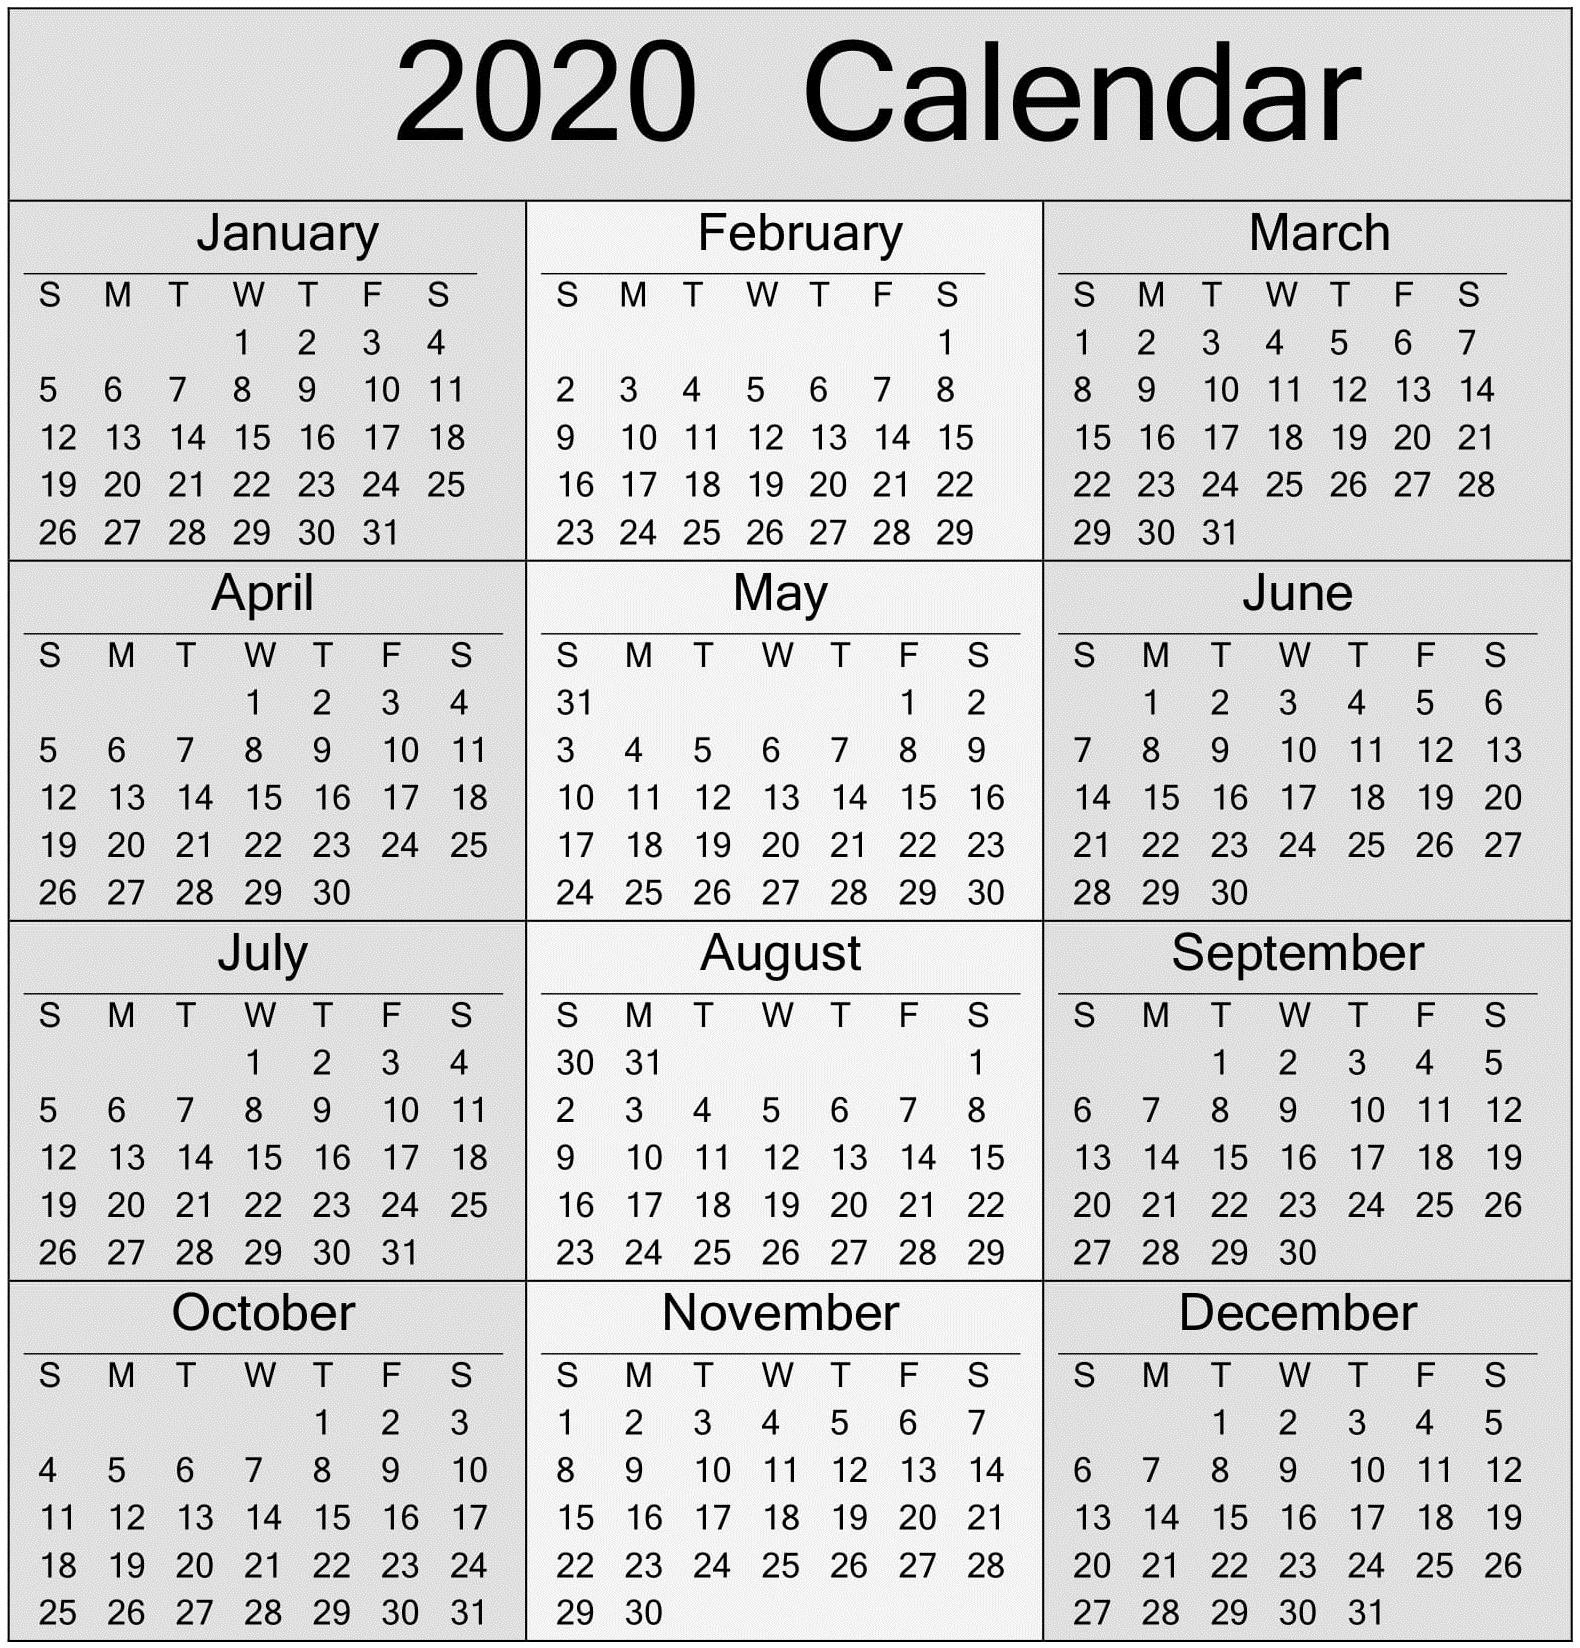 Free Printable Yearly 2020 Calendar And Holiday Templates with Sunday To Saturday Calendar 2020 Printable